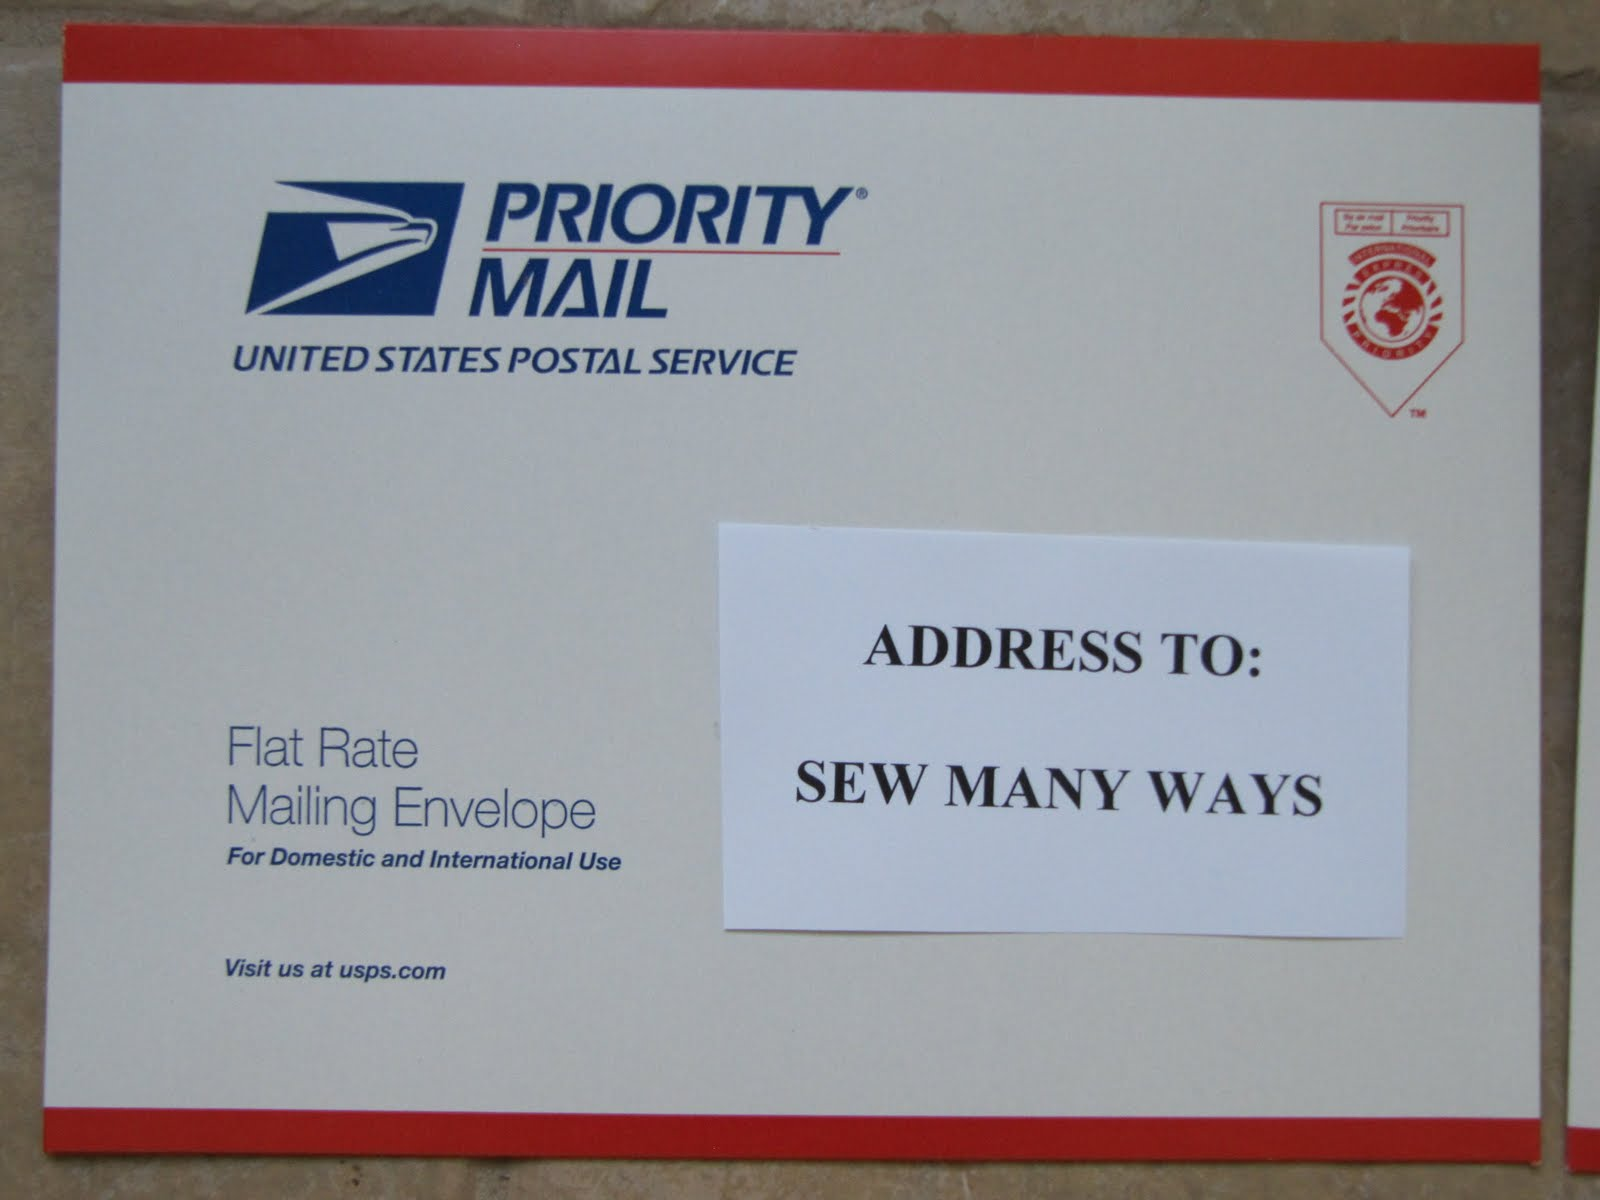 Usps What Not To Write Writing Letters To Deployed Soldiers: What The  Second Envelope Is Addressed Back To The Swapper